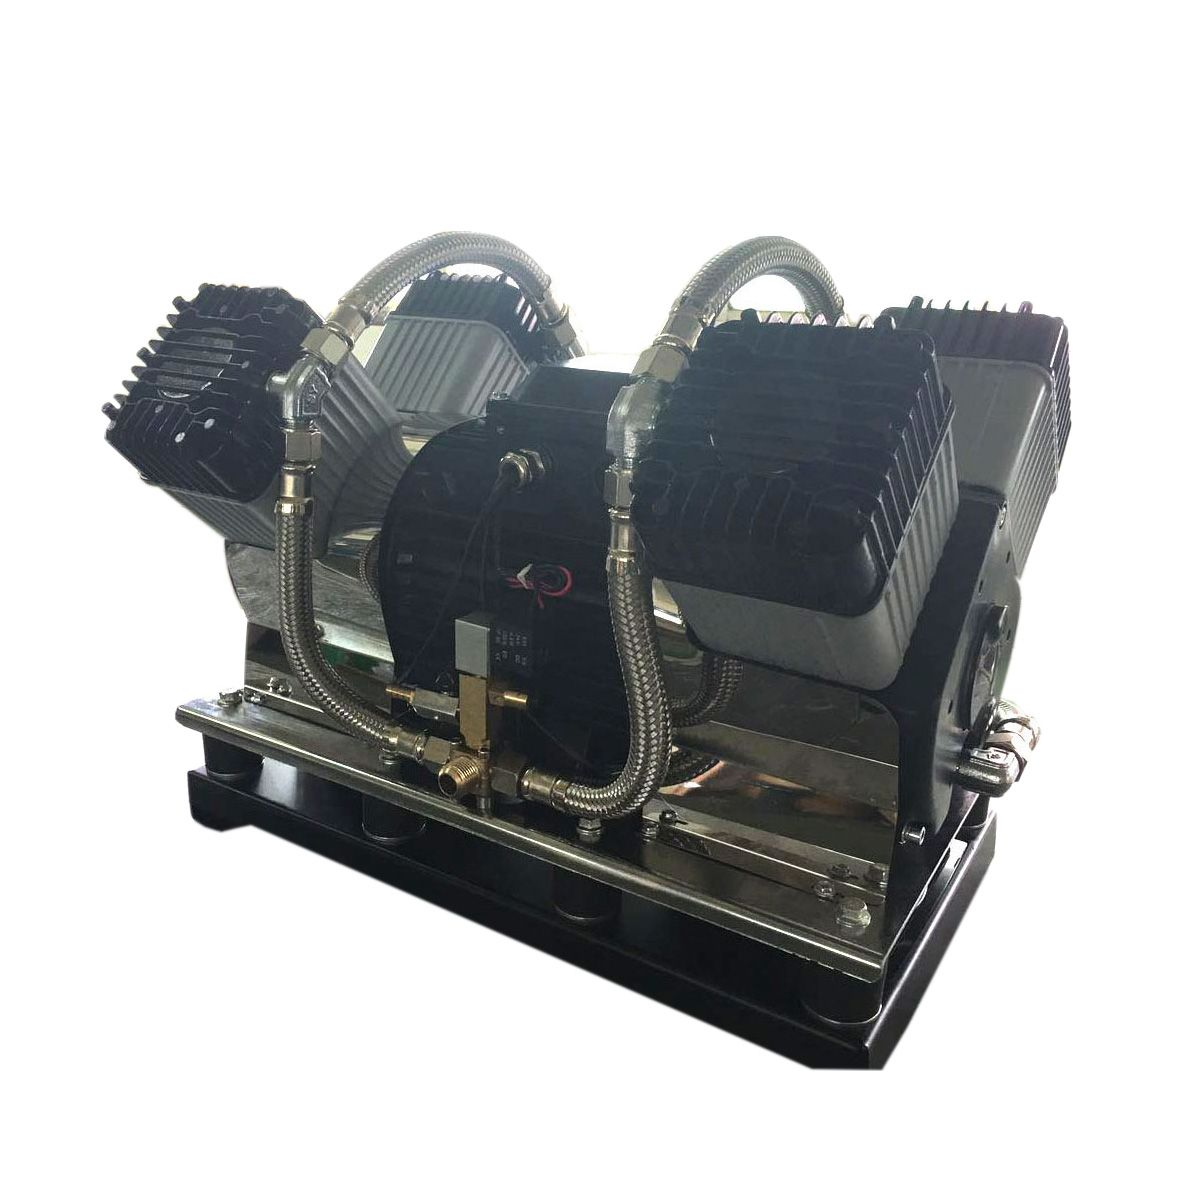 Piston type oilfree Air Compressor (With images